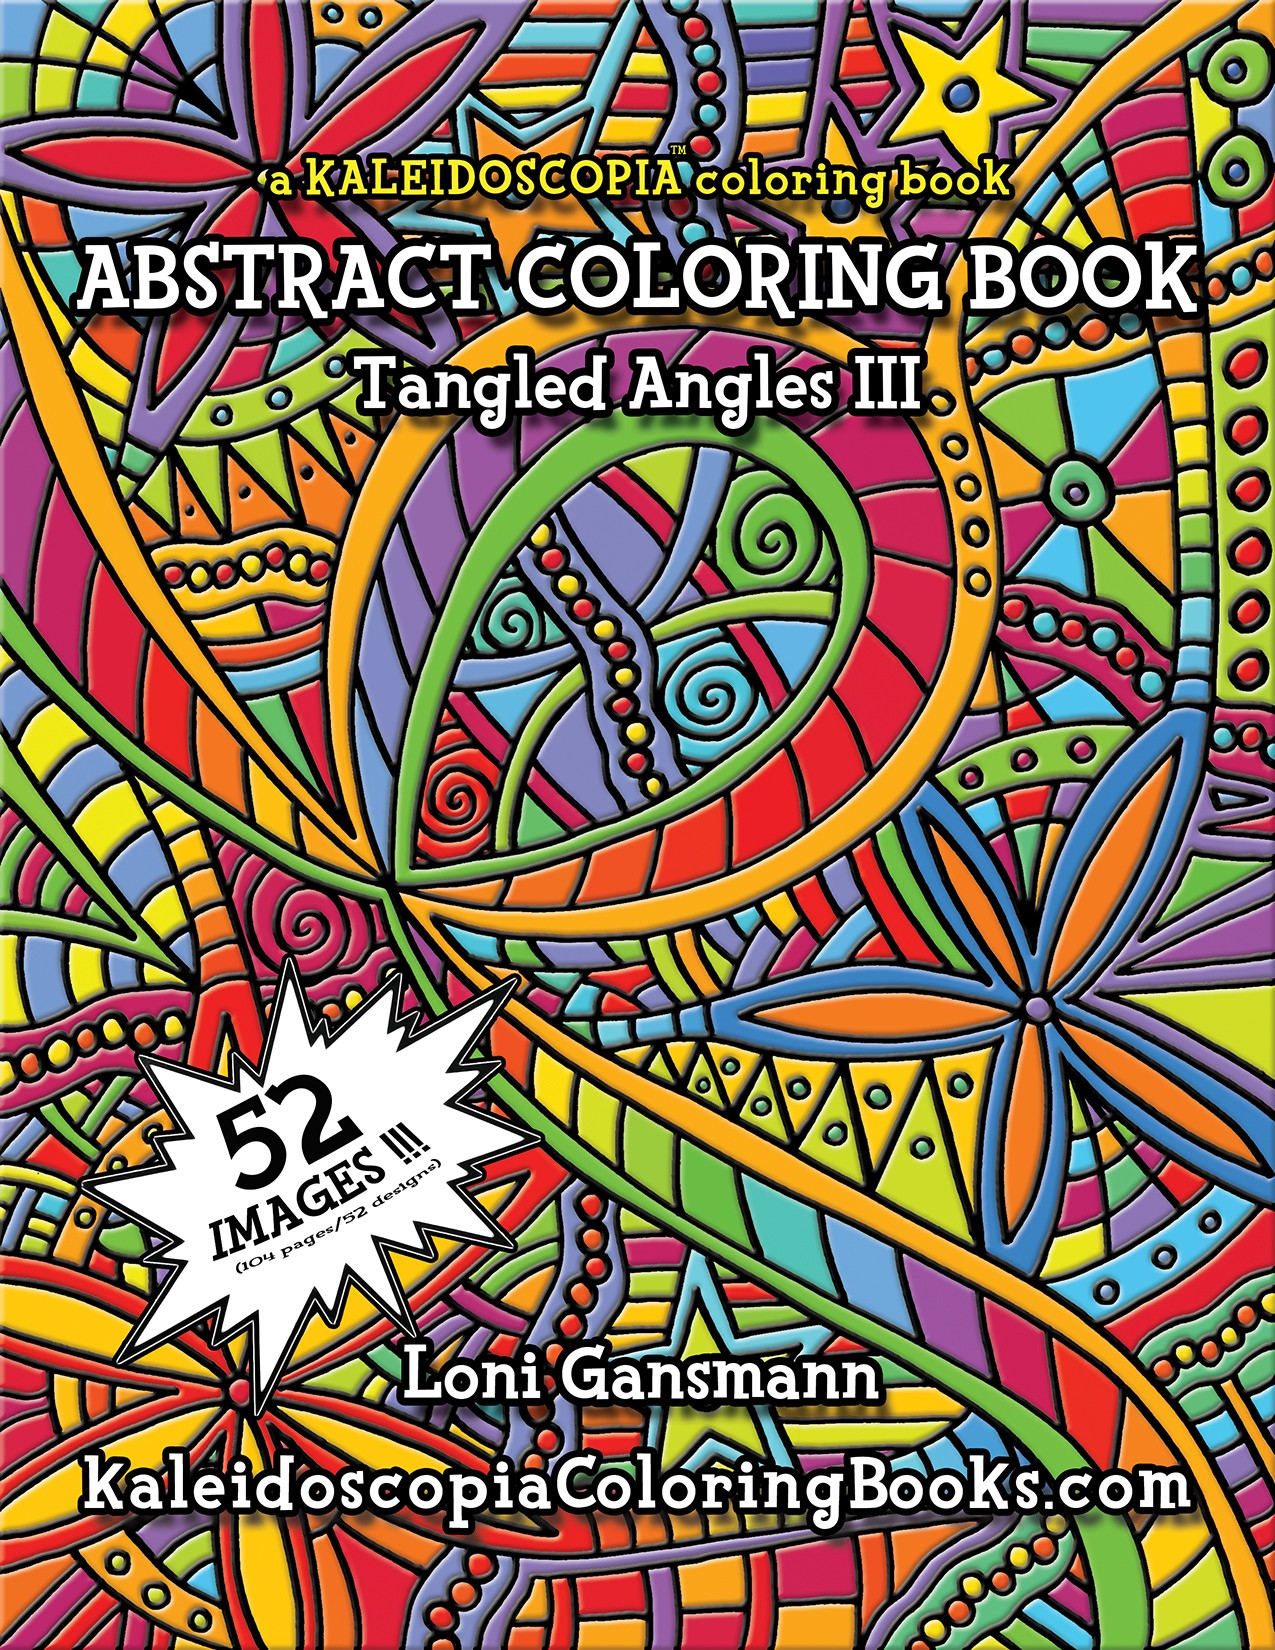 tangled angles 3 an abstract coloring book - Abstract Coloring Books